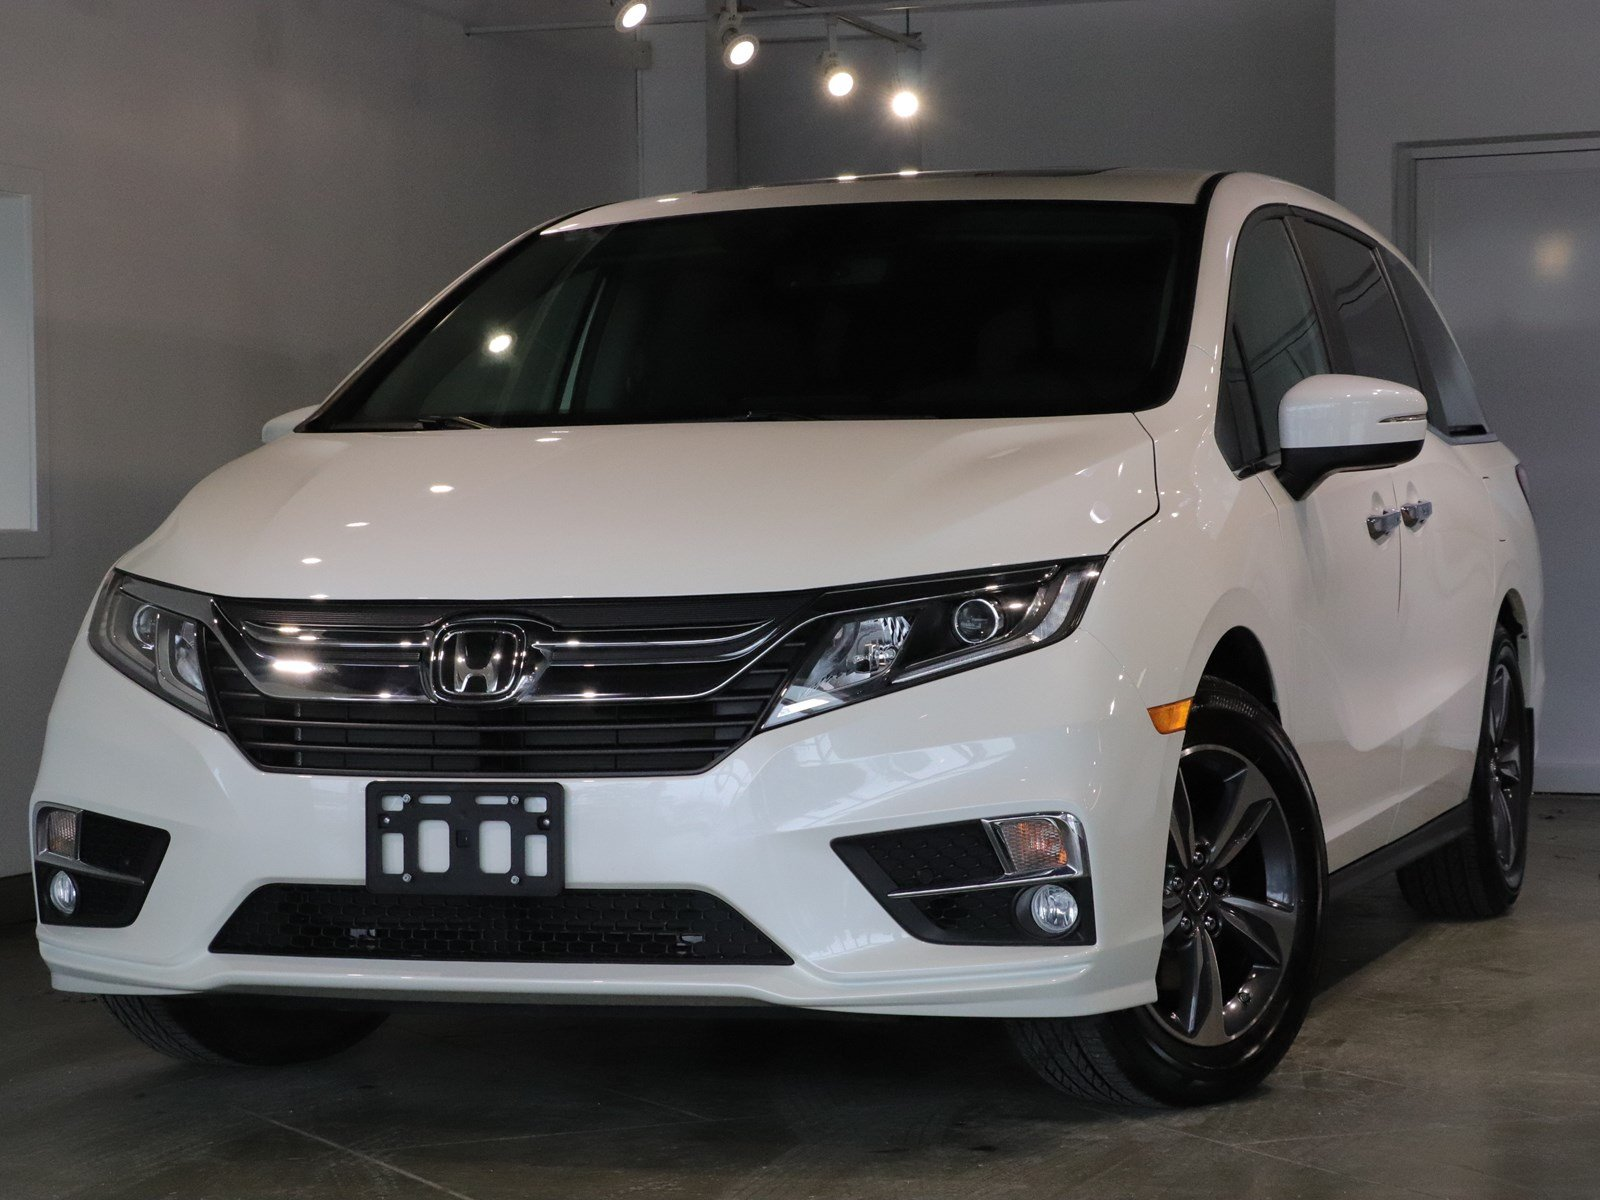 Photo Pre-Owned 2018 Honda Odyssey EX-L - THE ODYSSEY OF MINIVANS - BEAUTIFULLY DESIGNED FWD Mini-van, Passenger